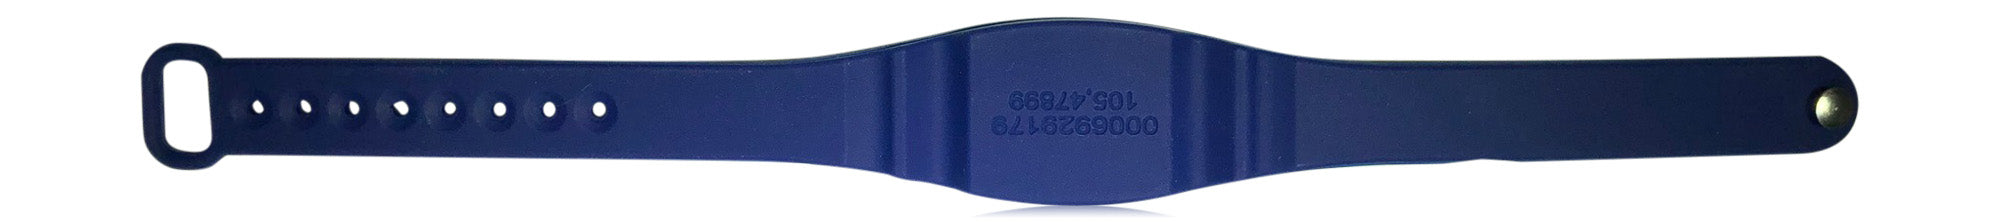 50 Blue Adjustable 26 Bit EM Proximity Wristbands